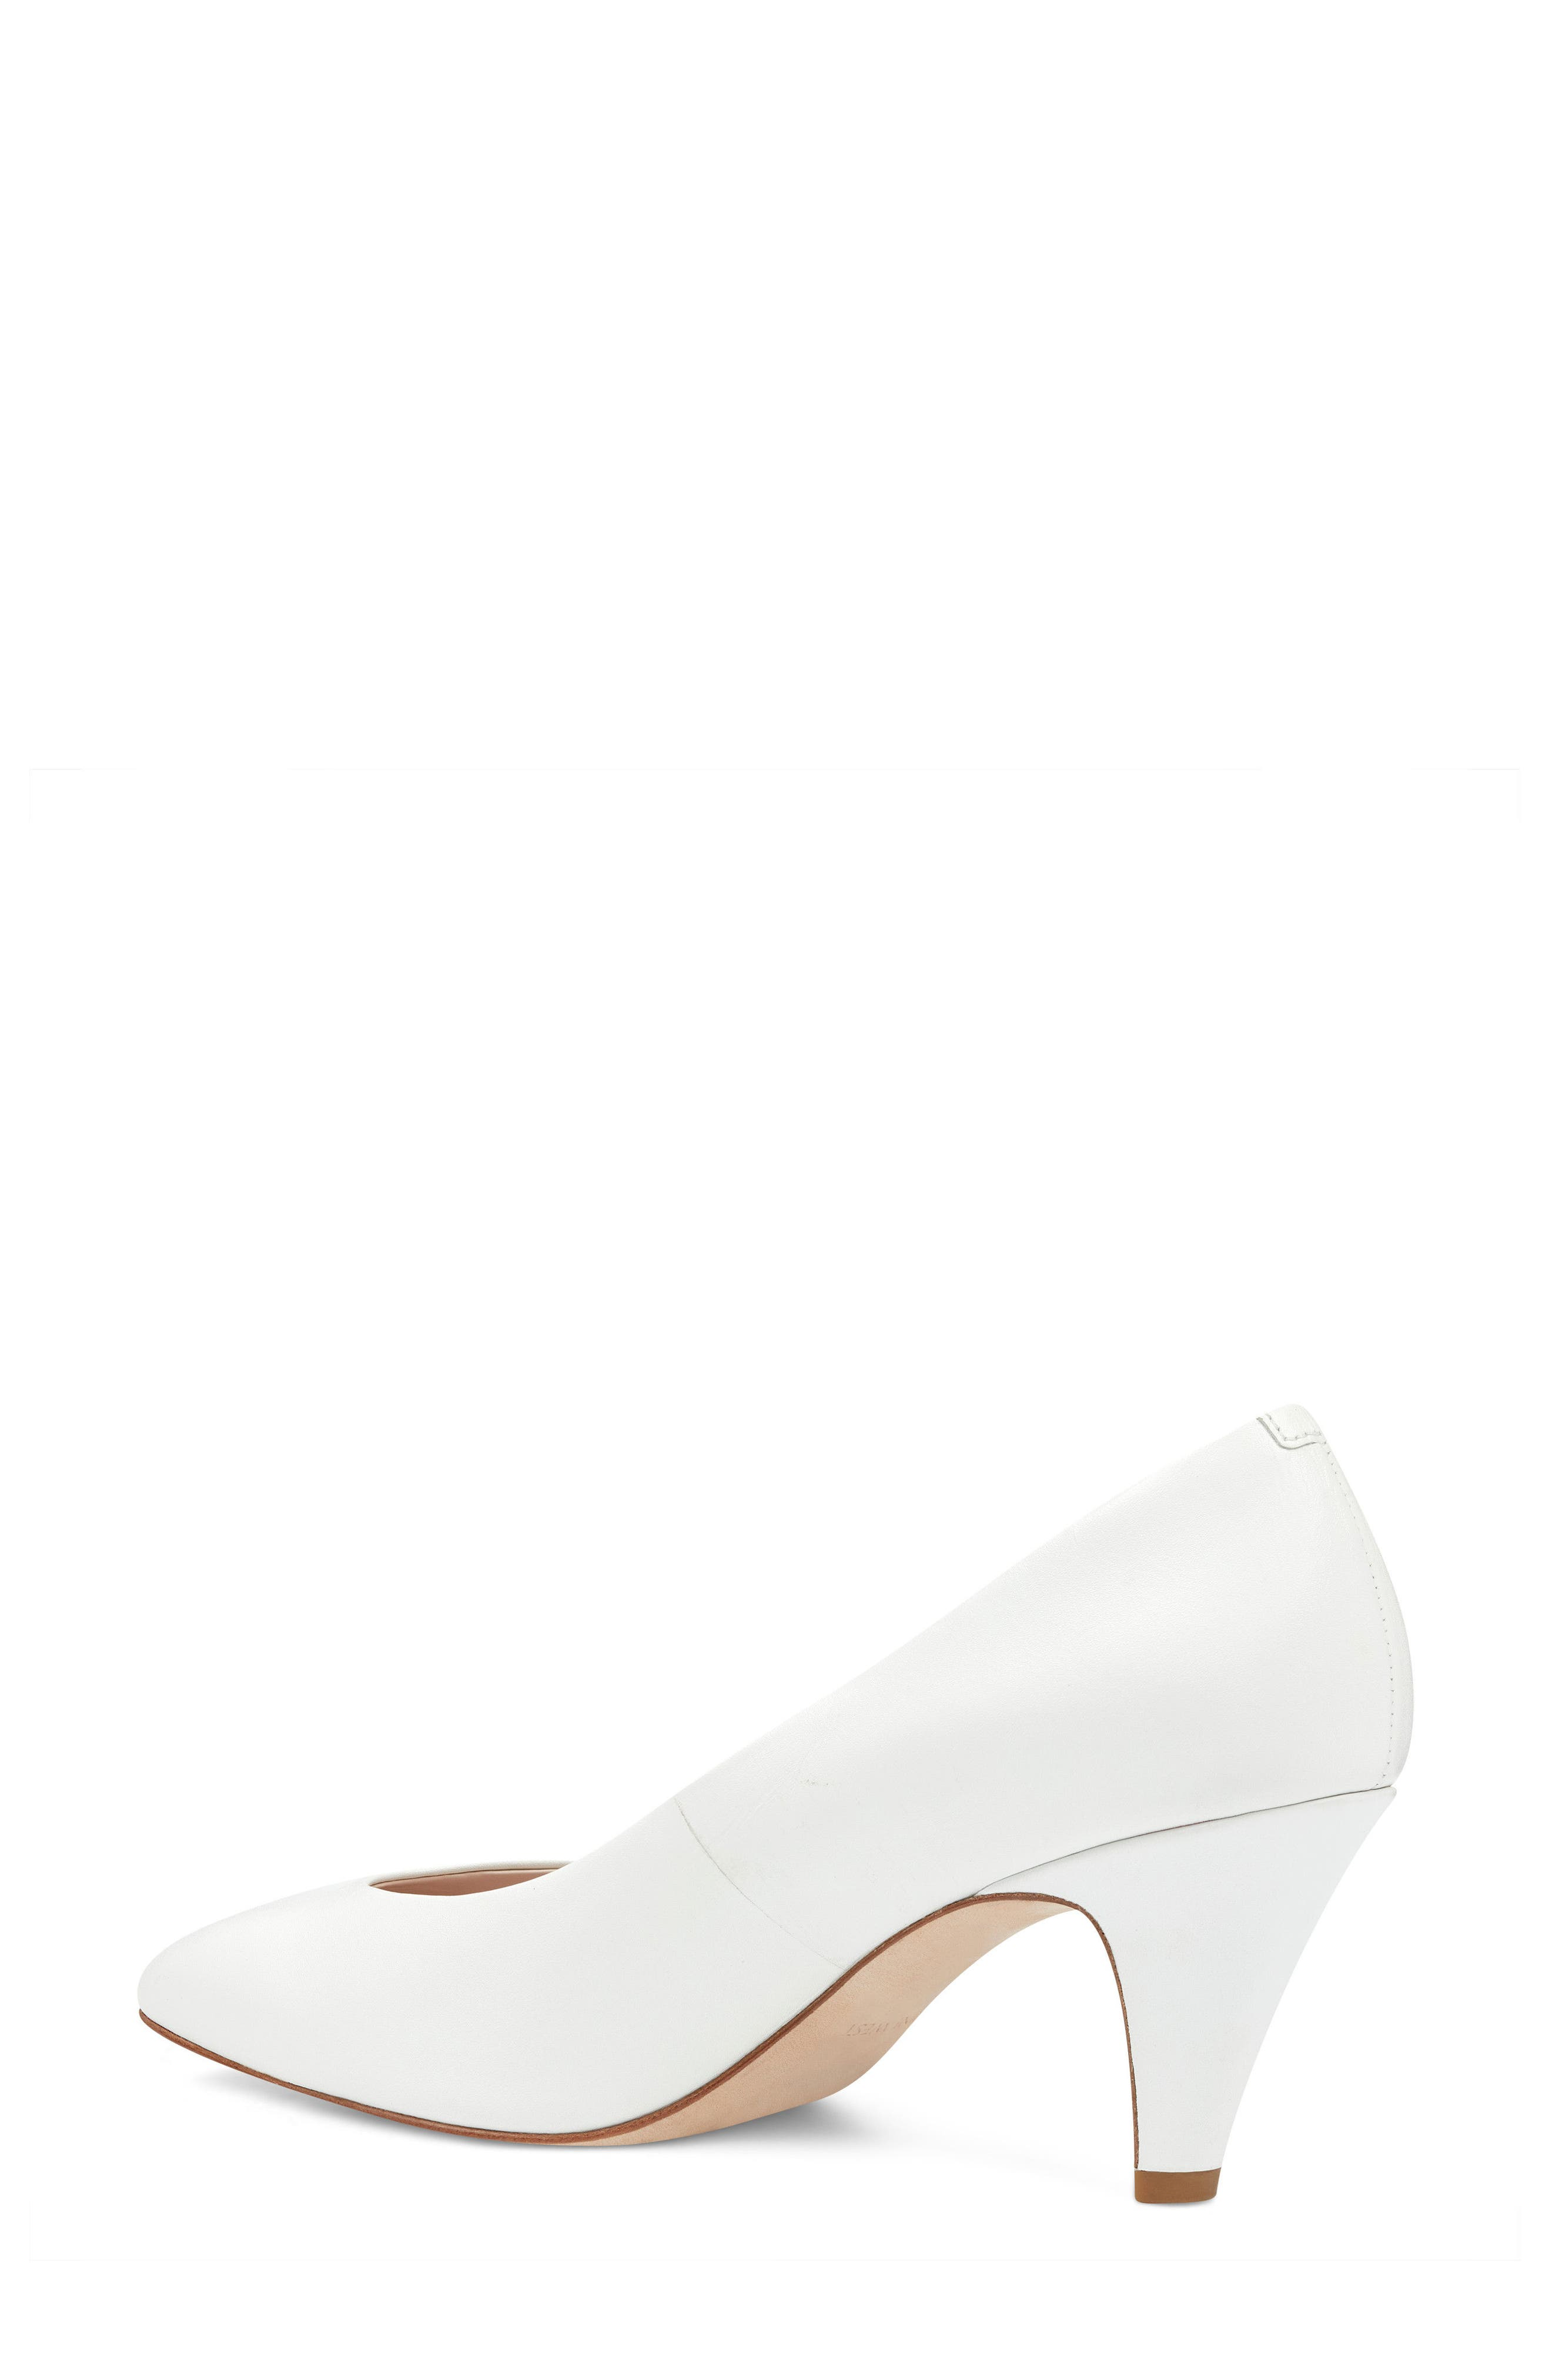 Faith - 40th Anniversary Capsule Collection Pump,                             Alternate thumbnail 2, color,                             White Leather